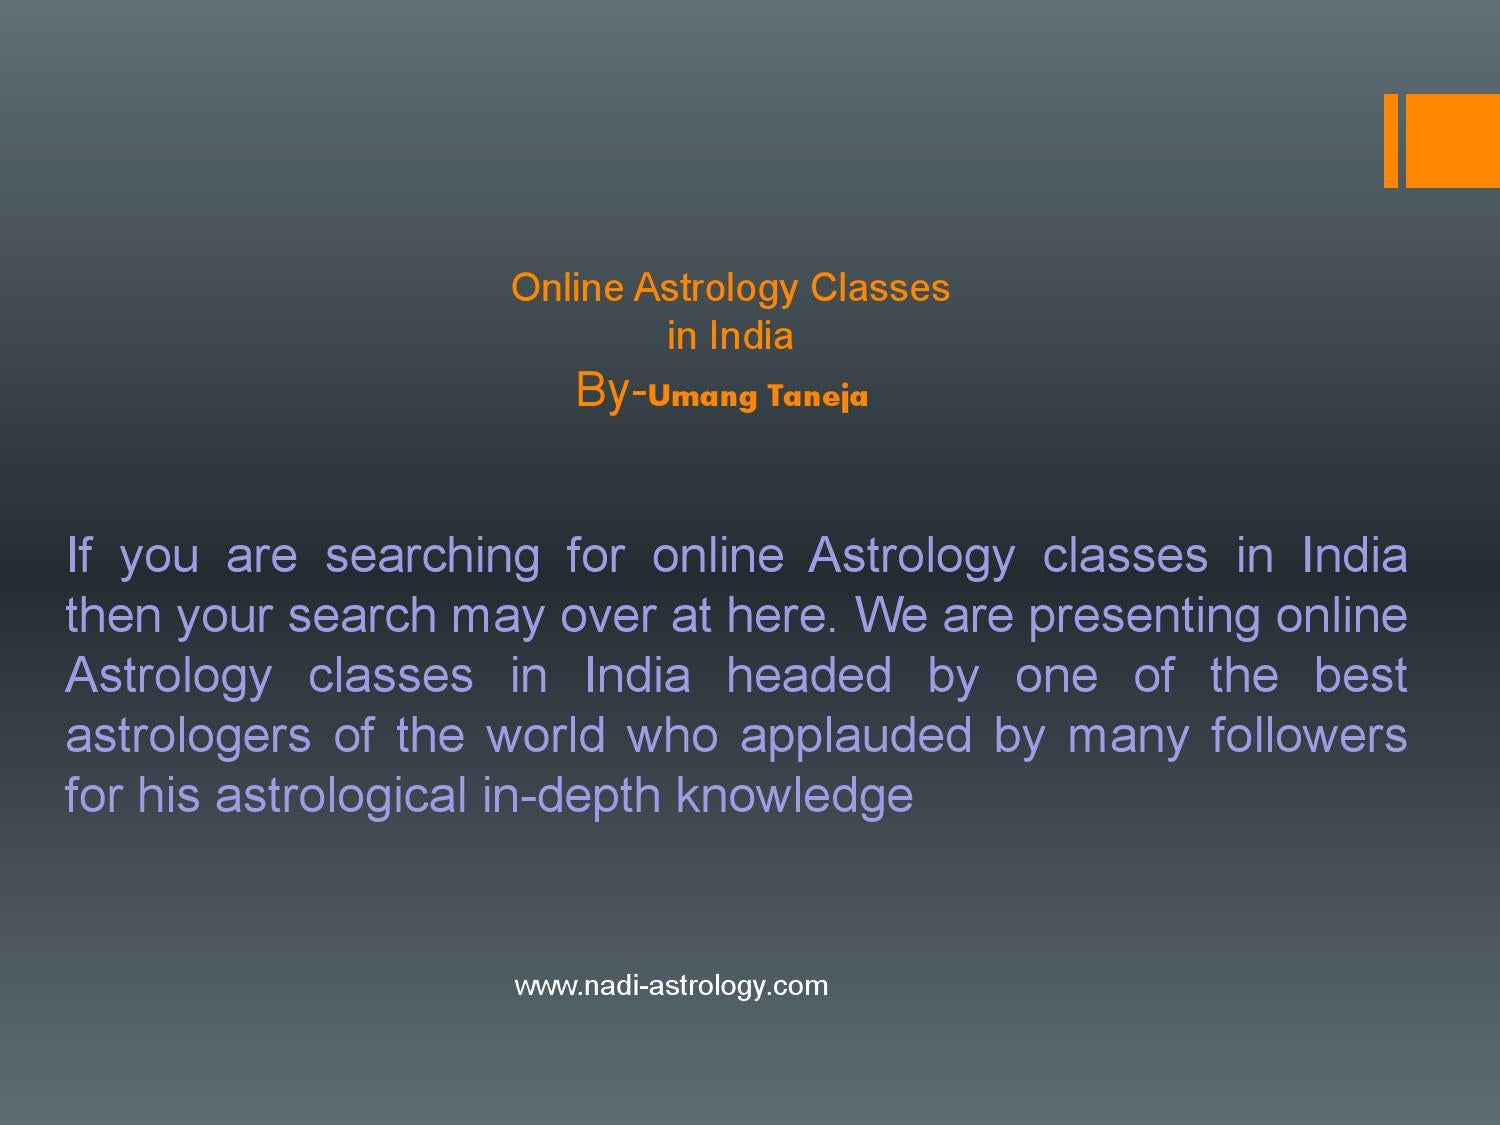 Online astrology classes in india docx by vinay - issuu